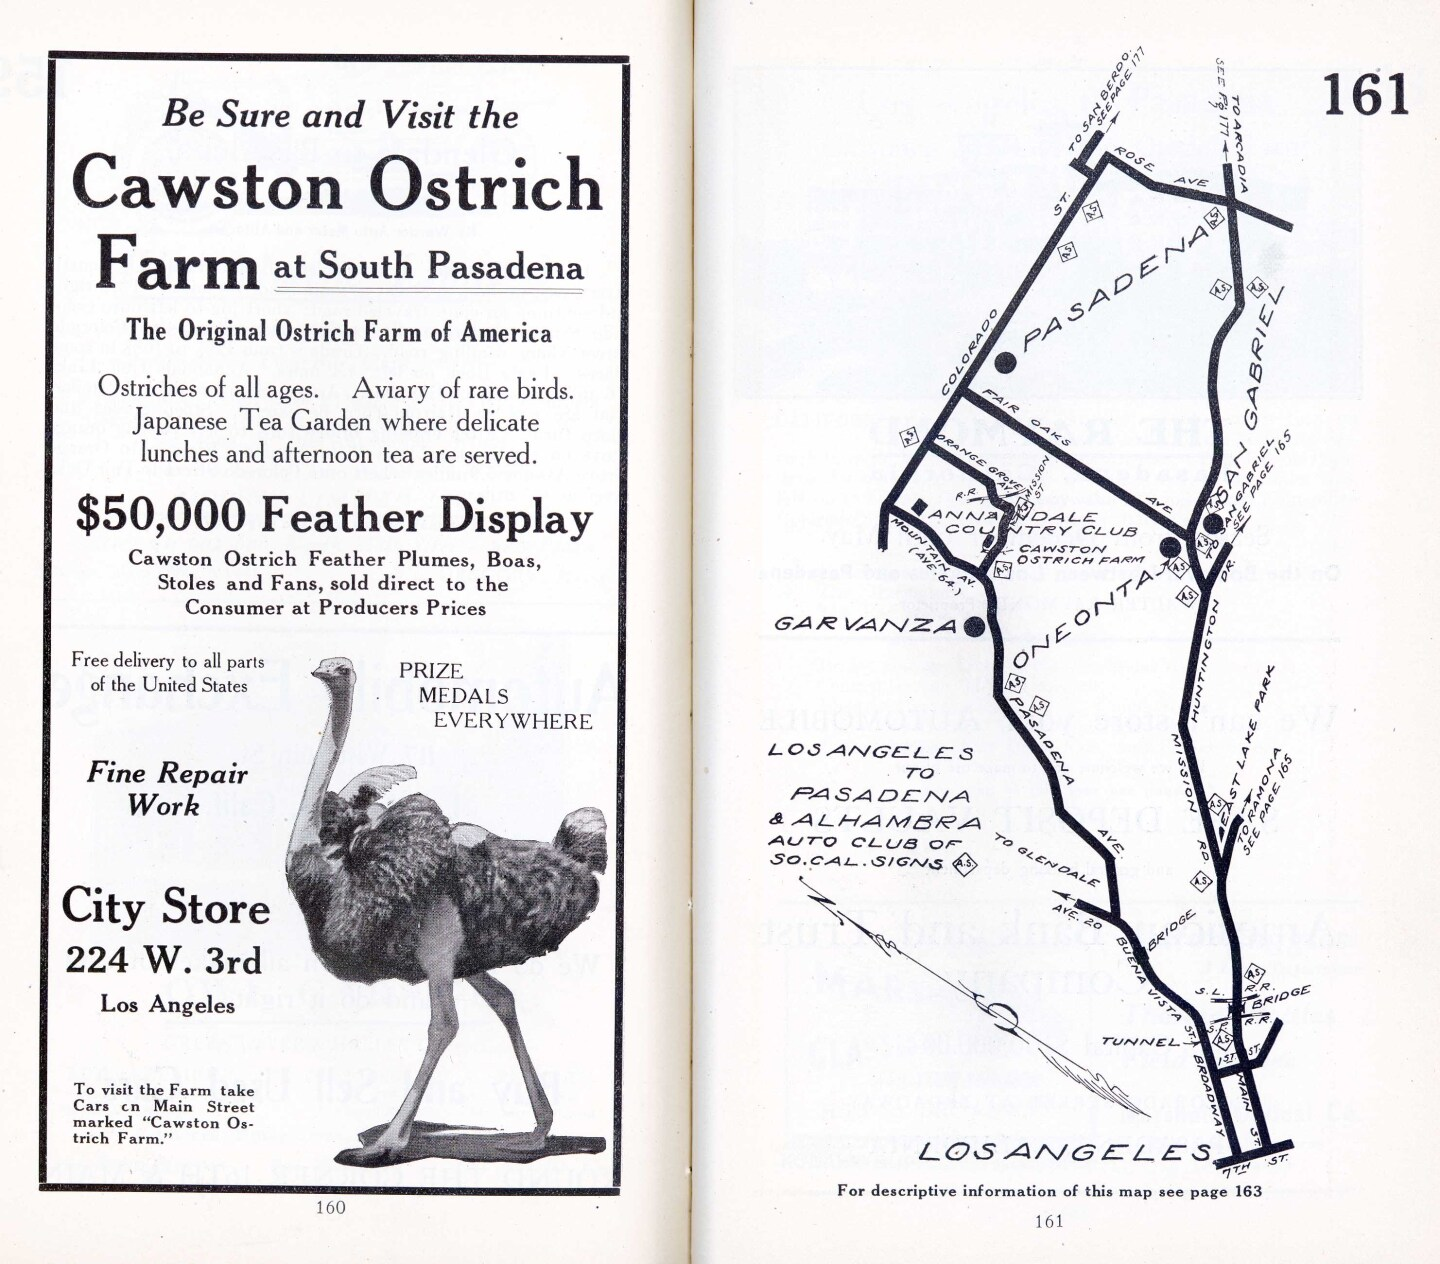 The Auto Club's first map product, a 1910 tour guide, featured an ad for the Cawston Ostrich Farm. Courtesy of the Automobile Club of Southern California Archives.